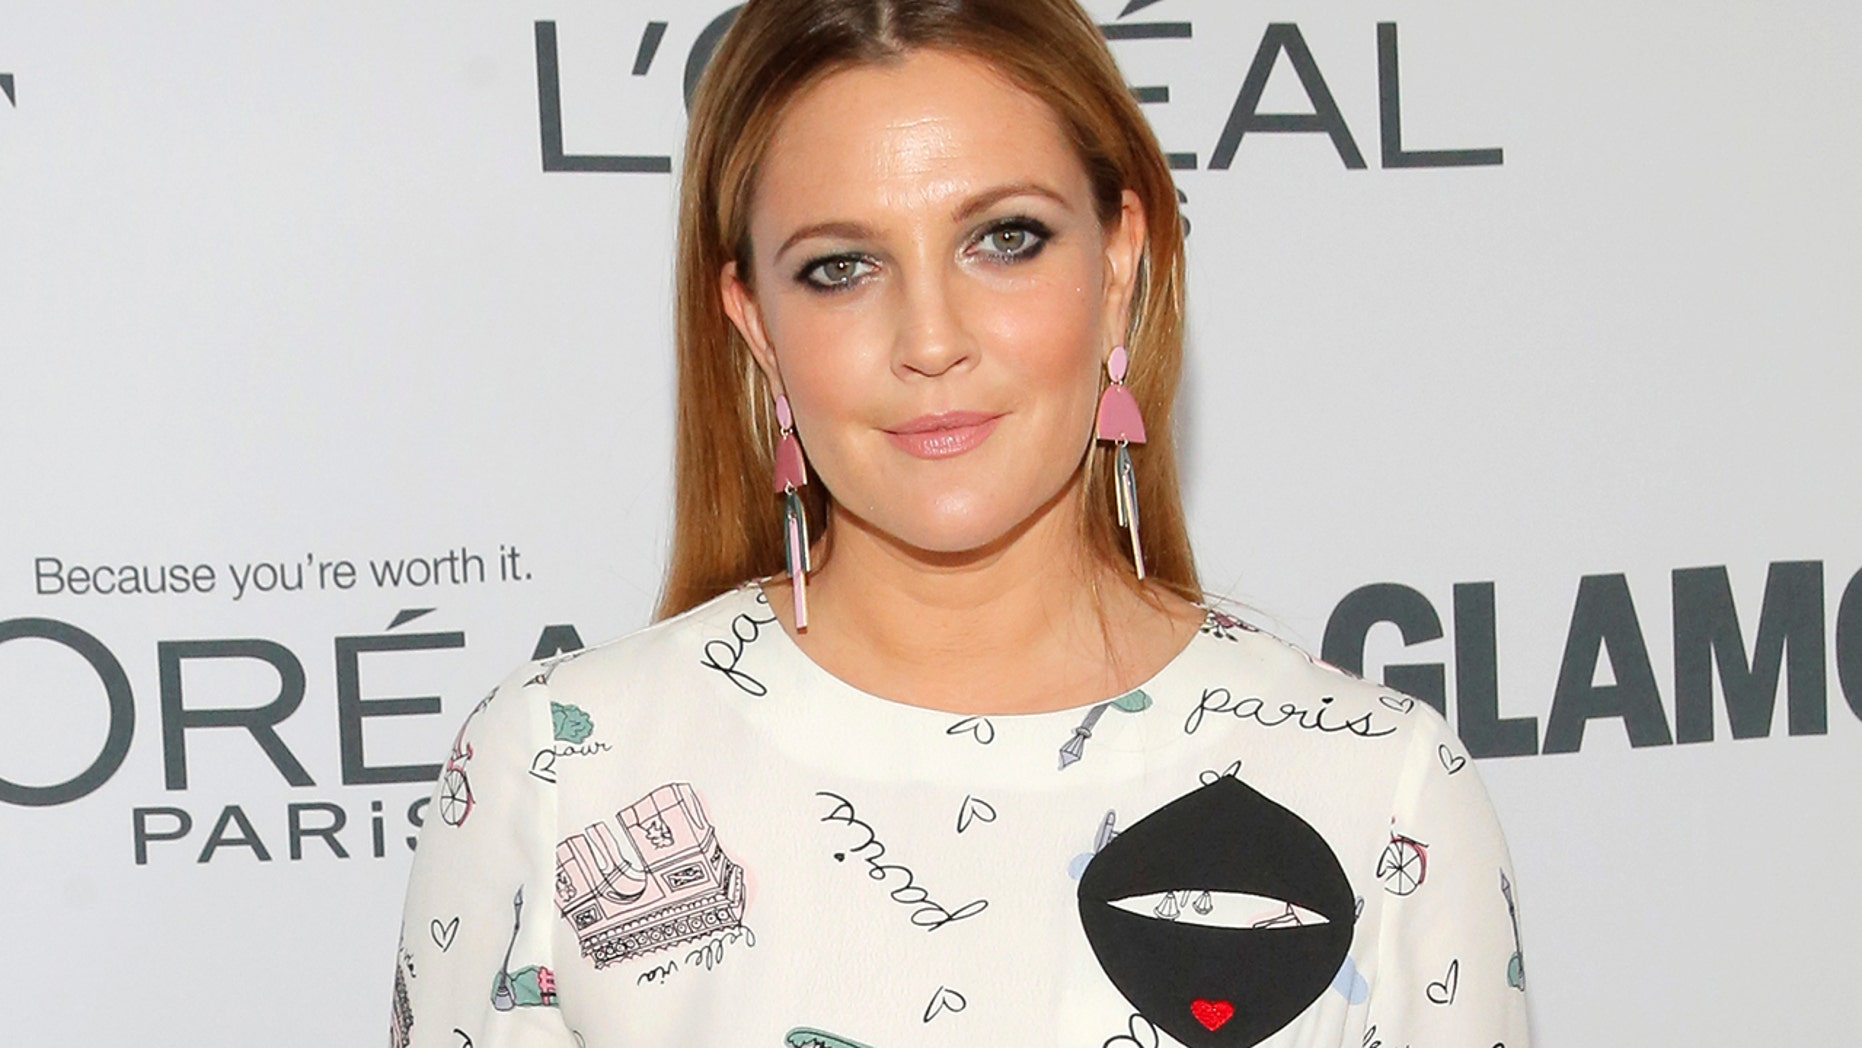 Drew Barrymore attends the 2017 Glamour Women of the Year Awards at the Kings Theater in Brooklyn, New York, U.S., November 13, 2017.